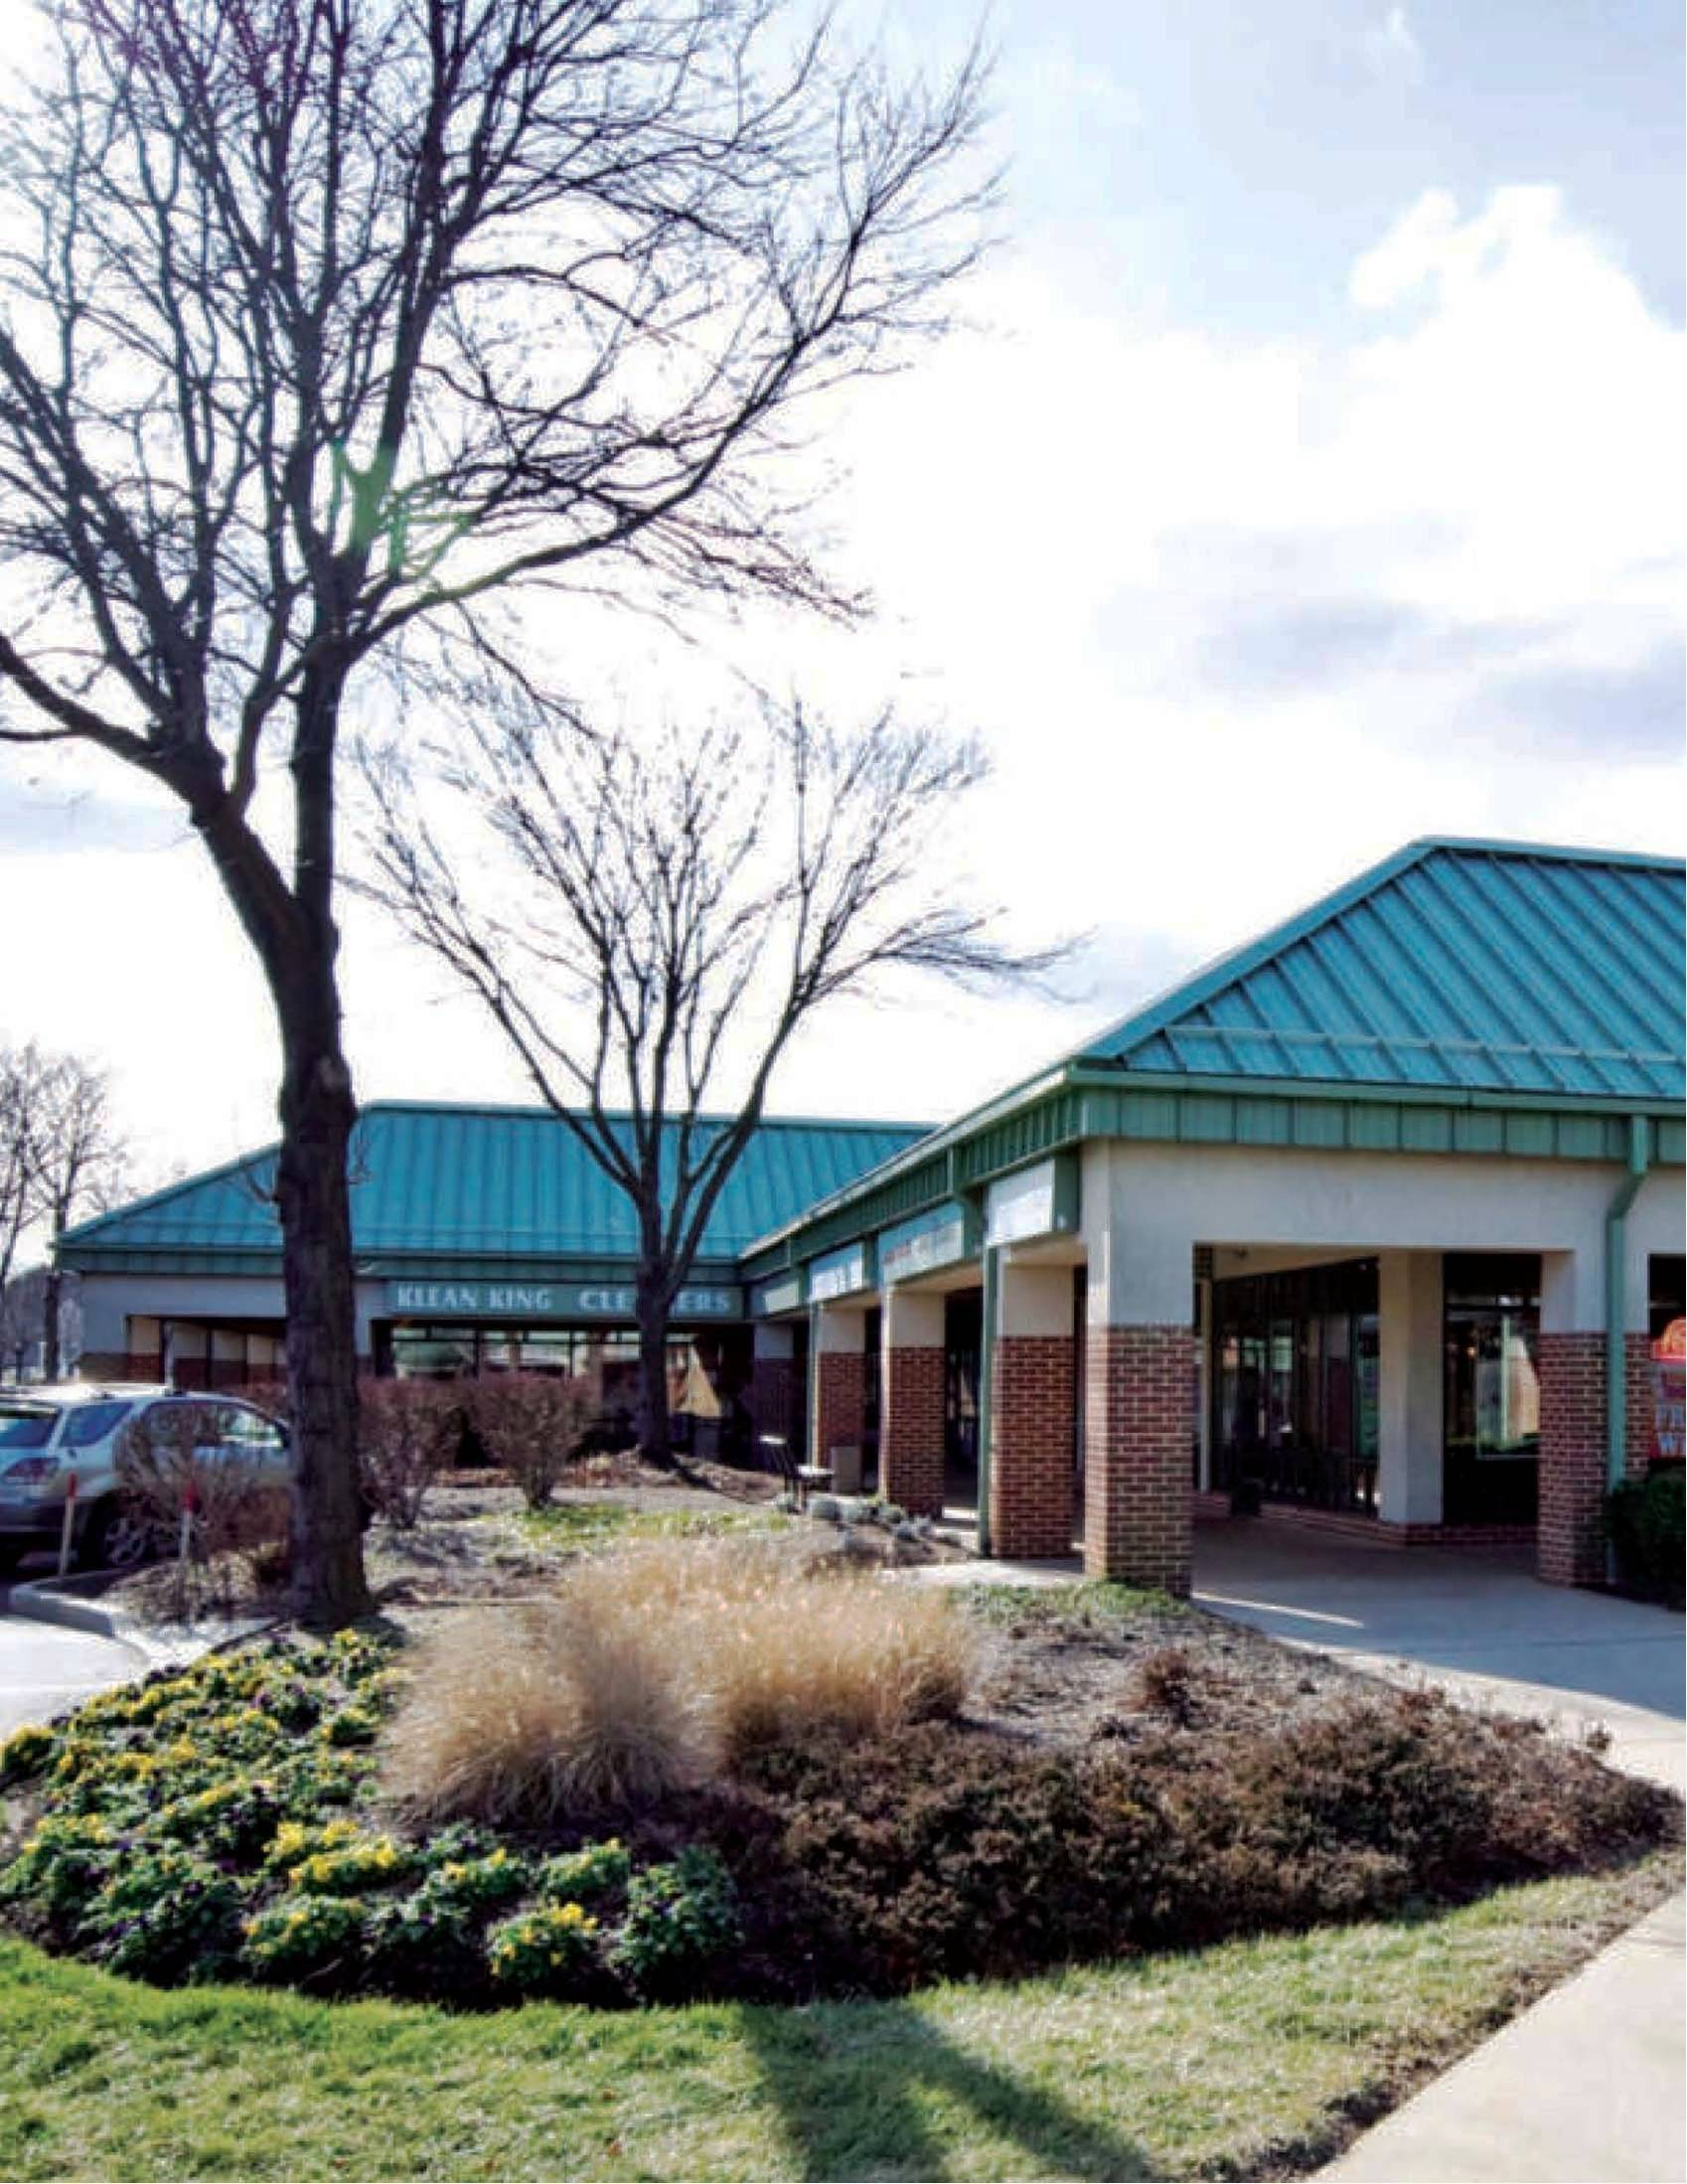 Plainsboro Plaza Shops